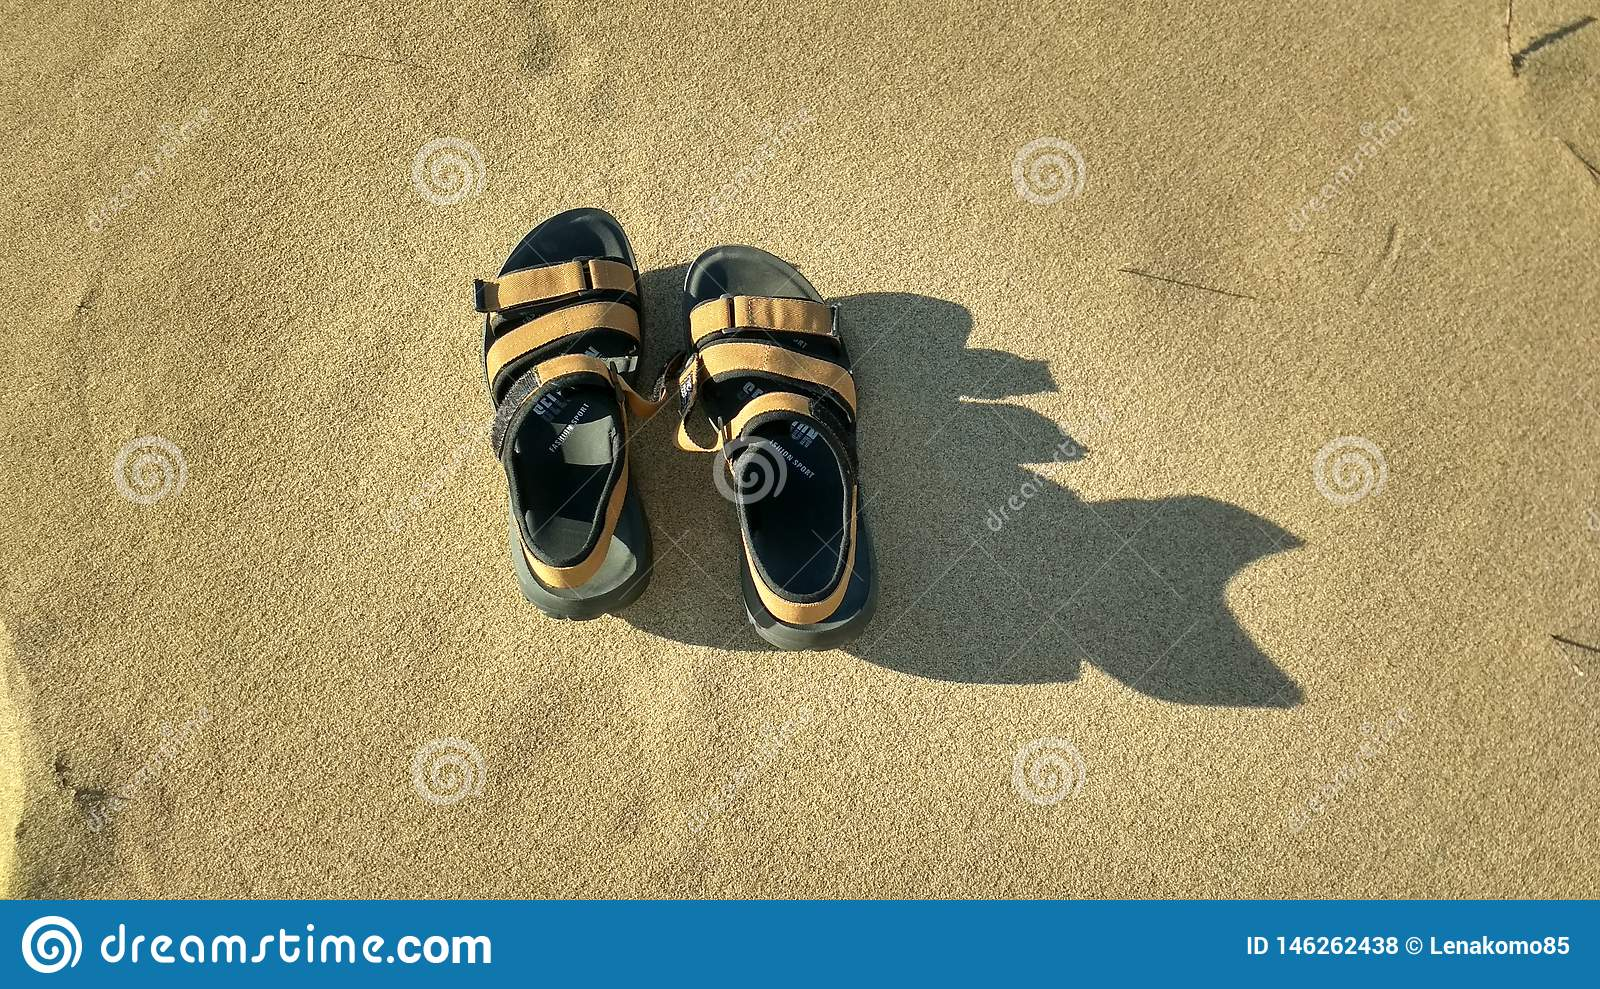 A pair of sandals on the sand.